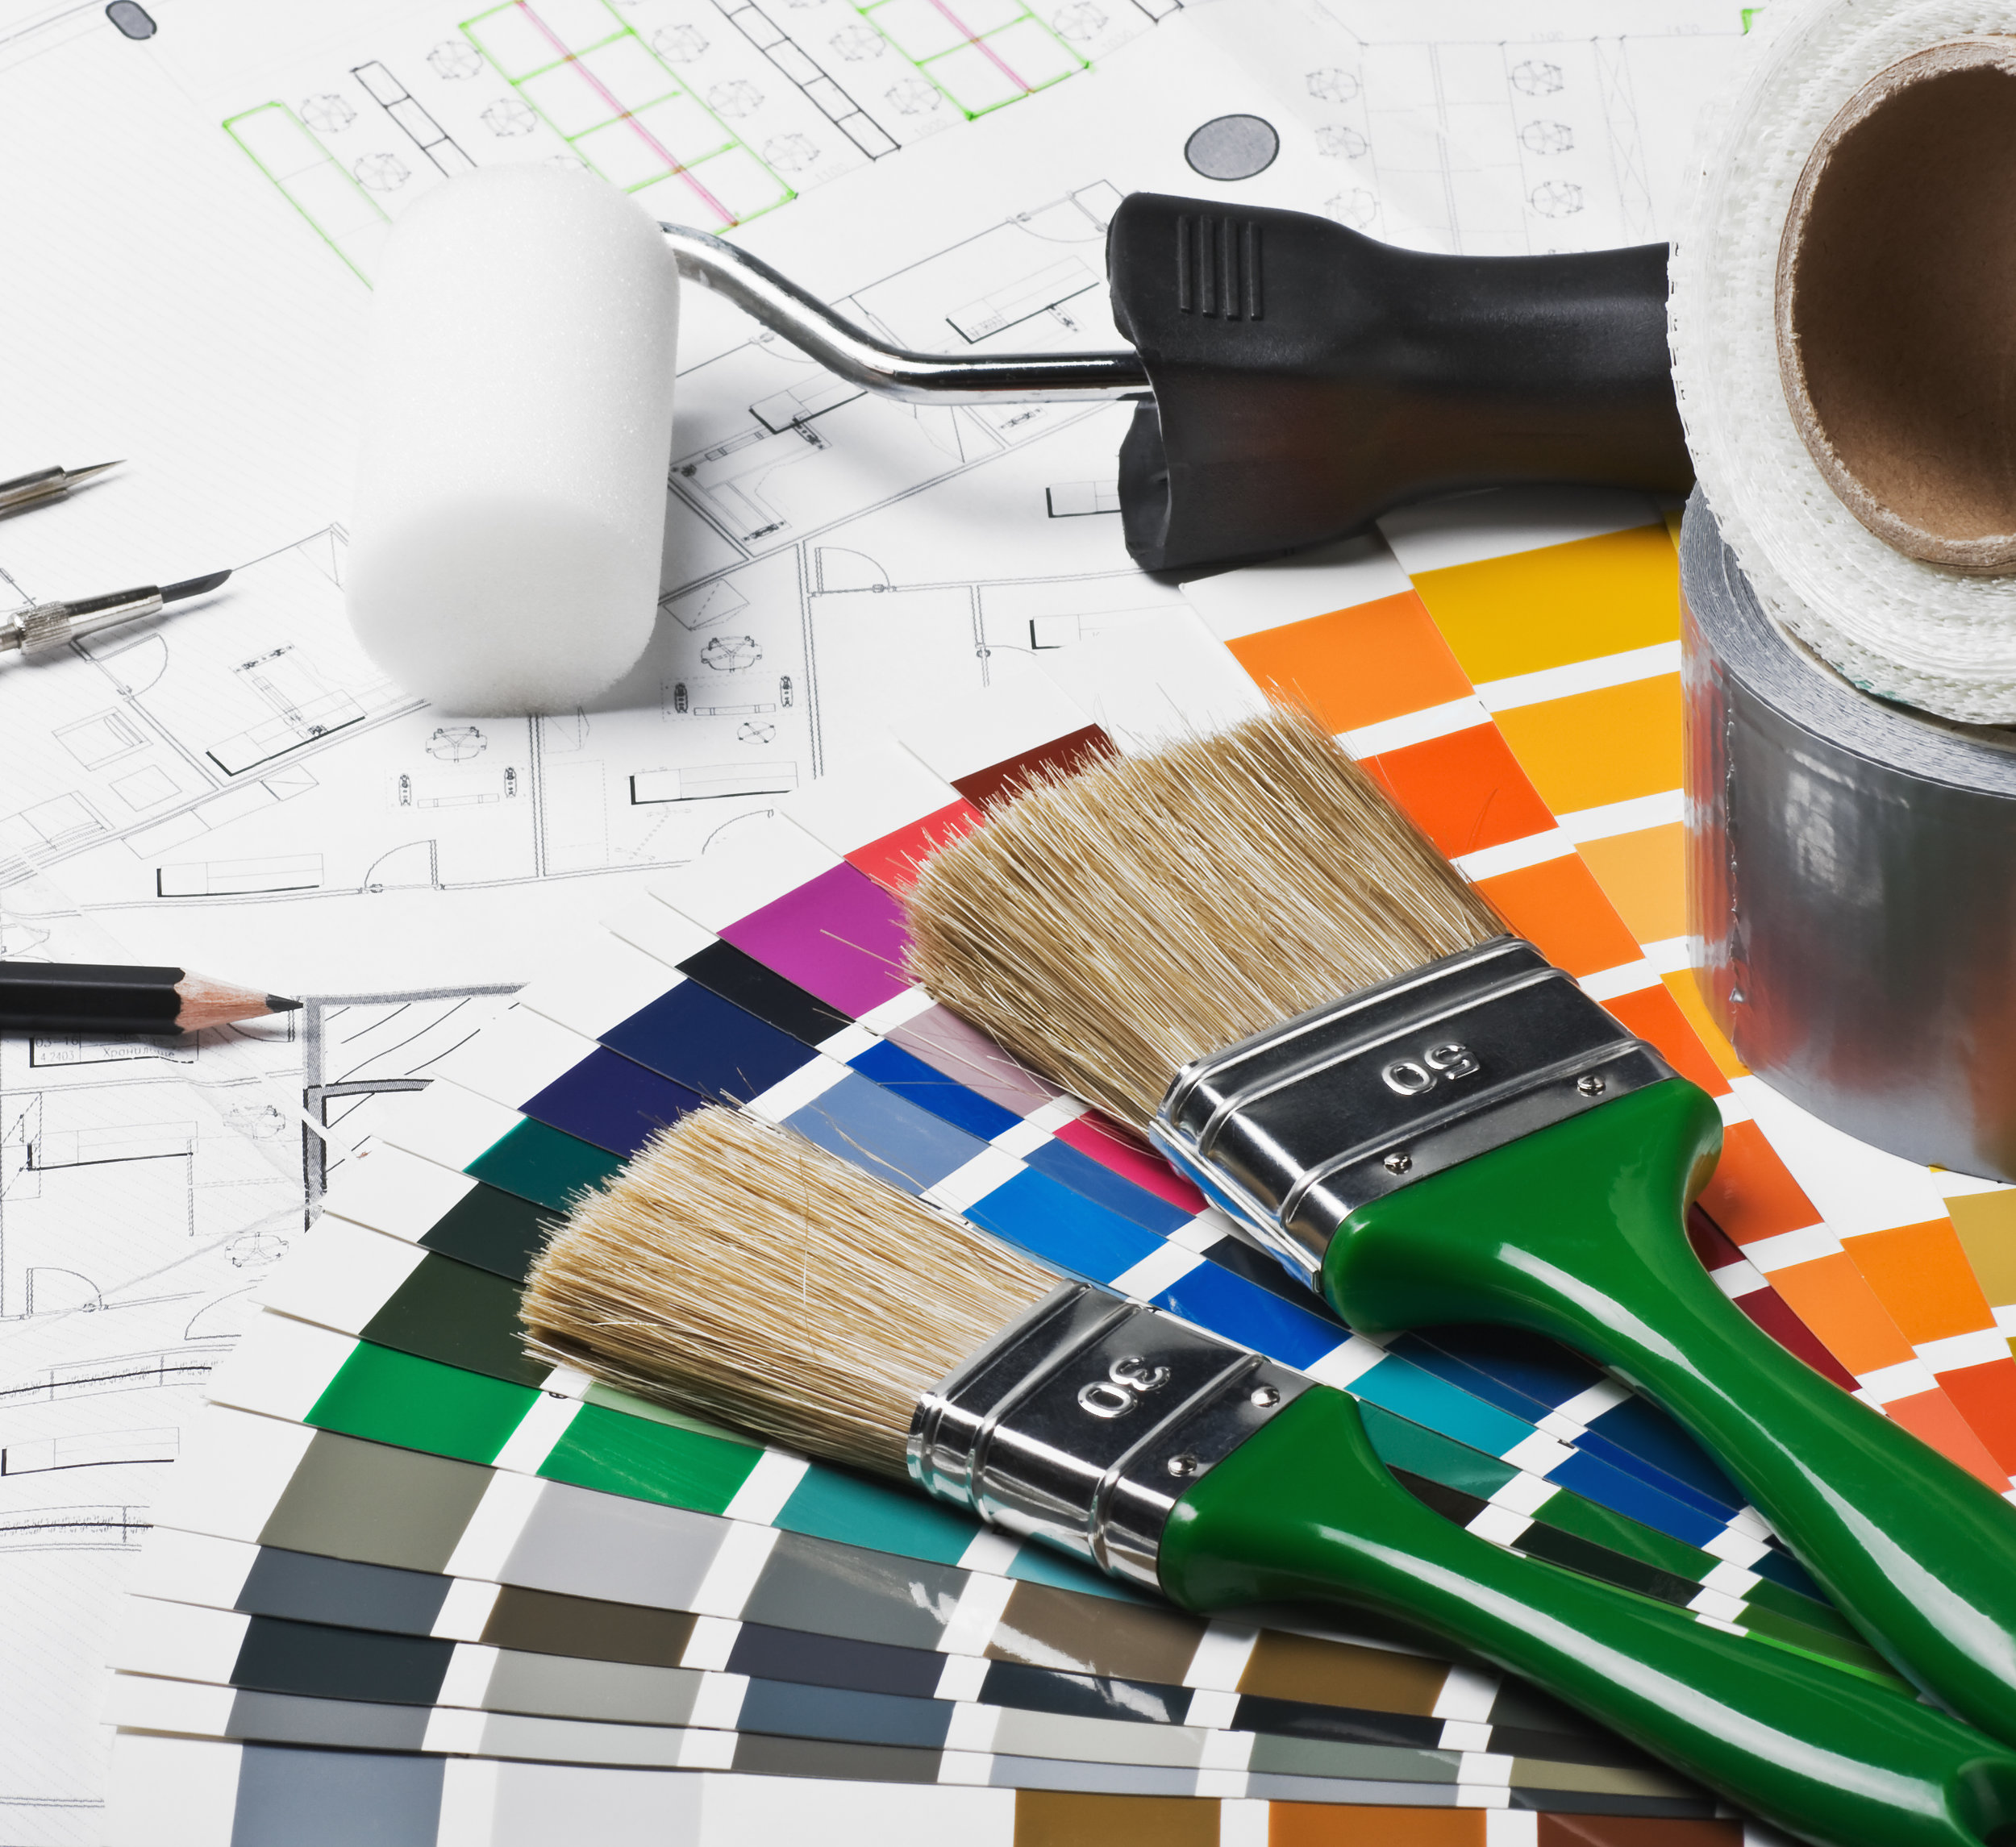 Several projects listed below can be DIY projects. However, some of the suggestions (eg: Crown Molding) are often best left to the pros. Consider your skill level and know your limitations when doing projects. A poorly done project can decrease your home's value and leave you regretting doing the project.